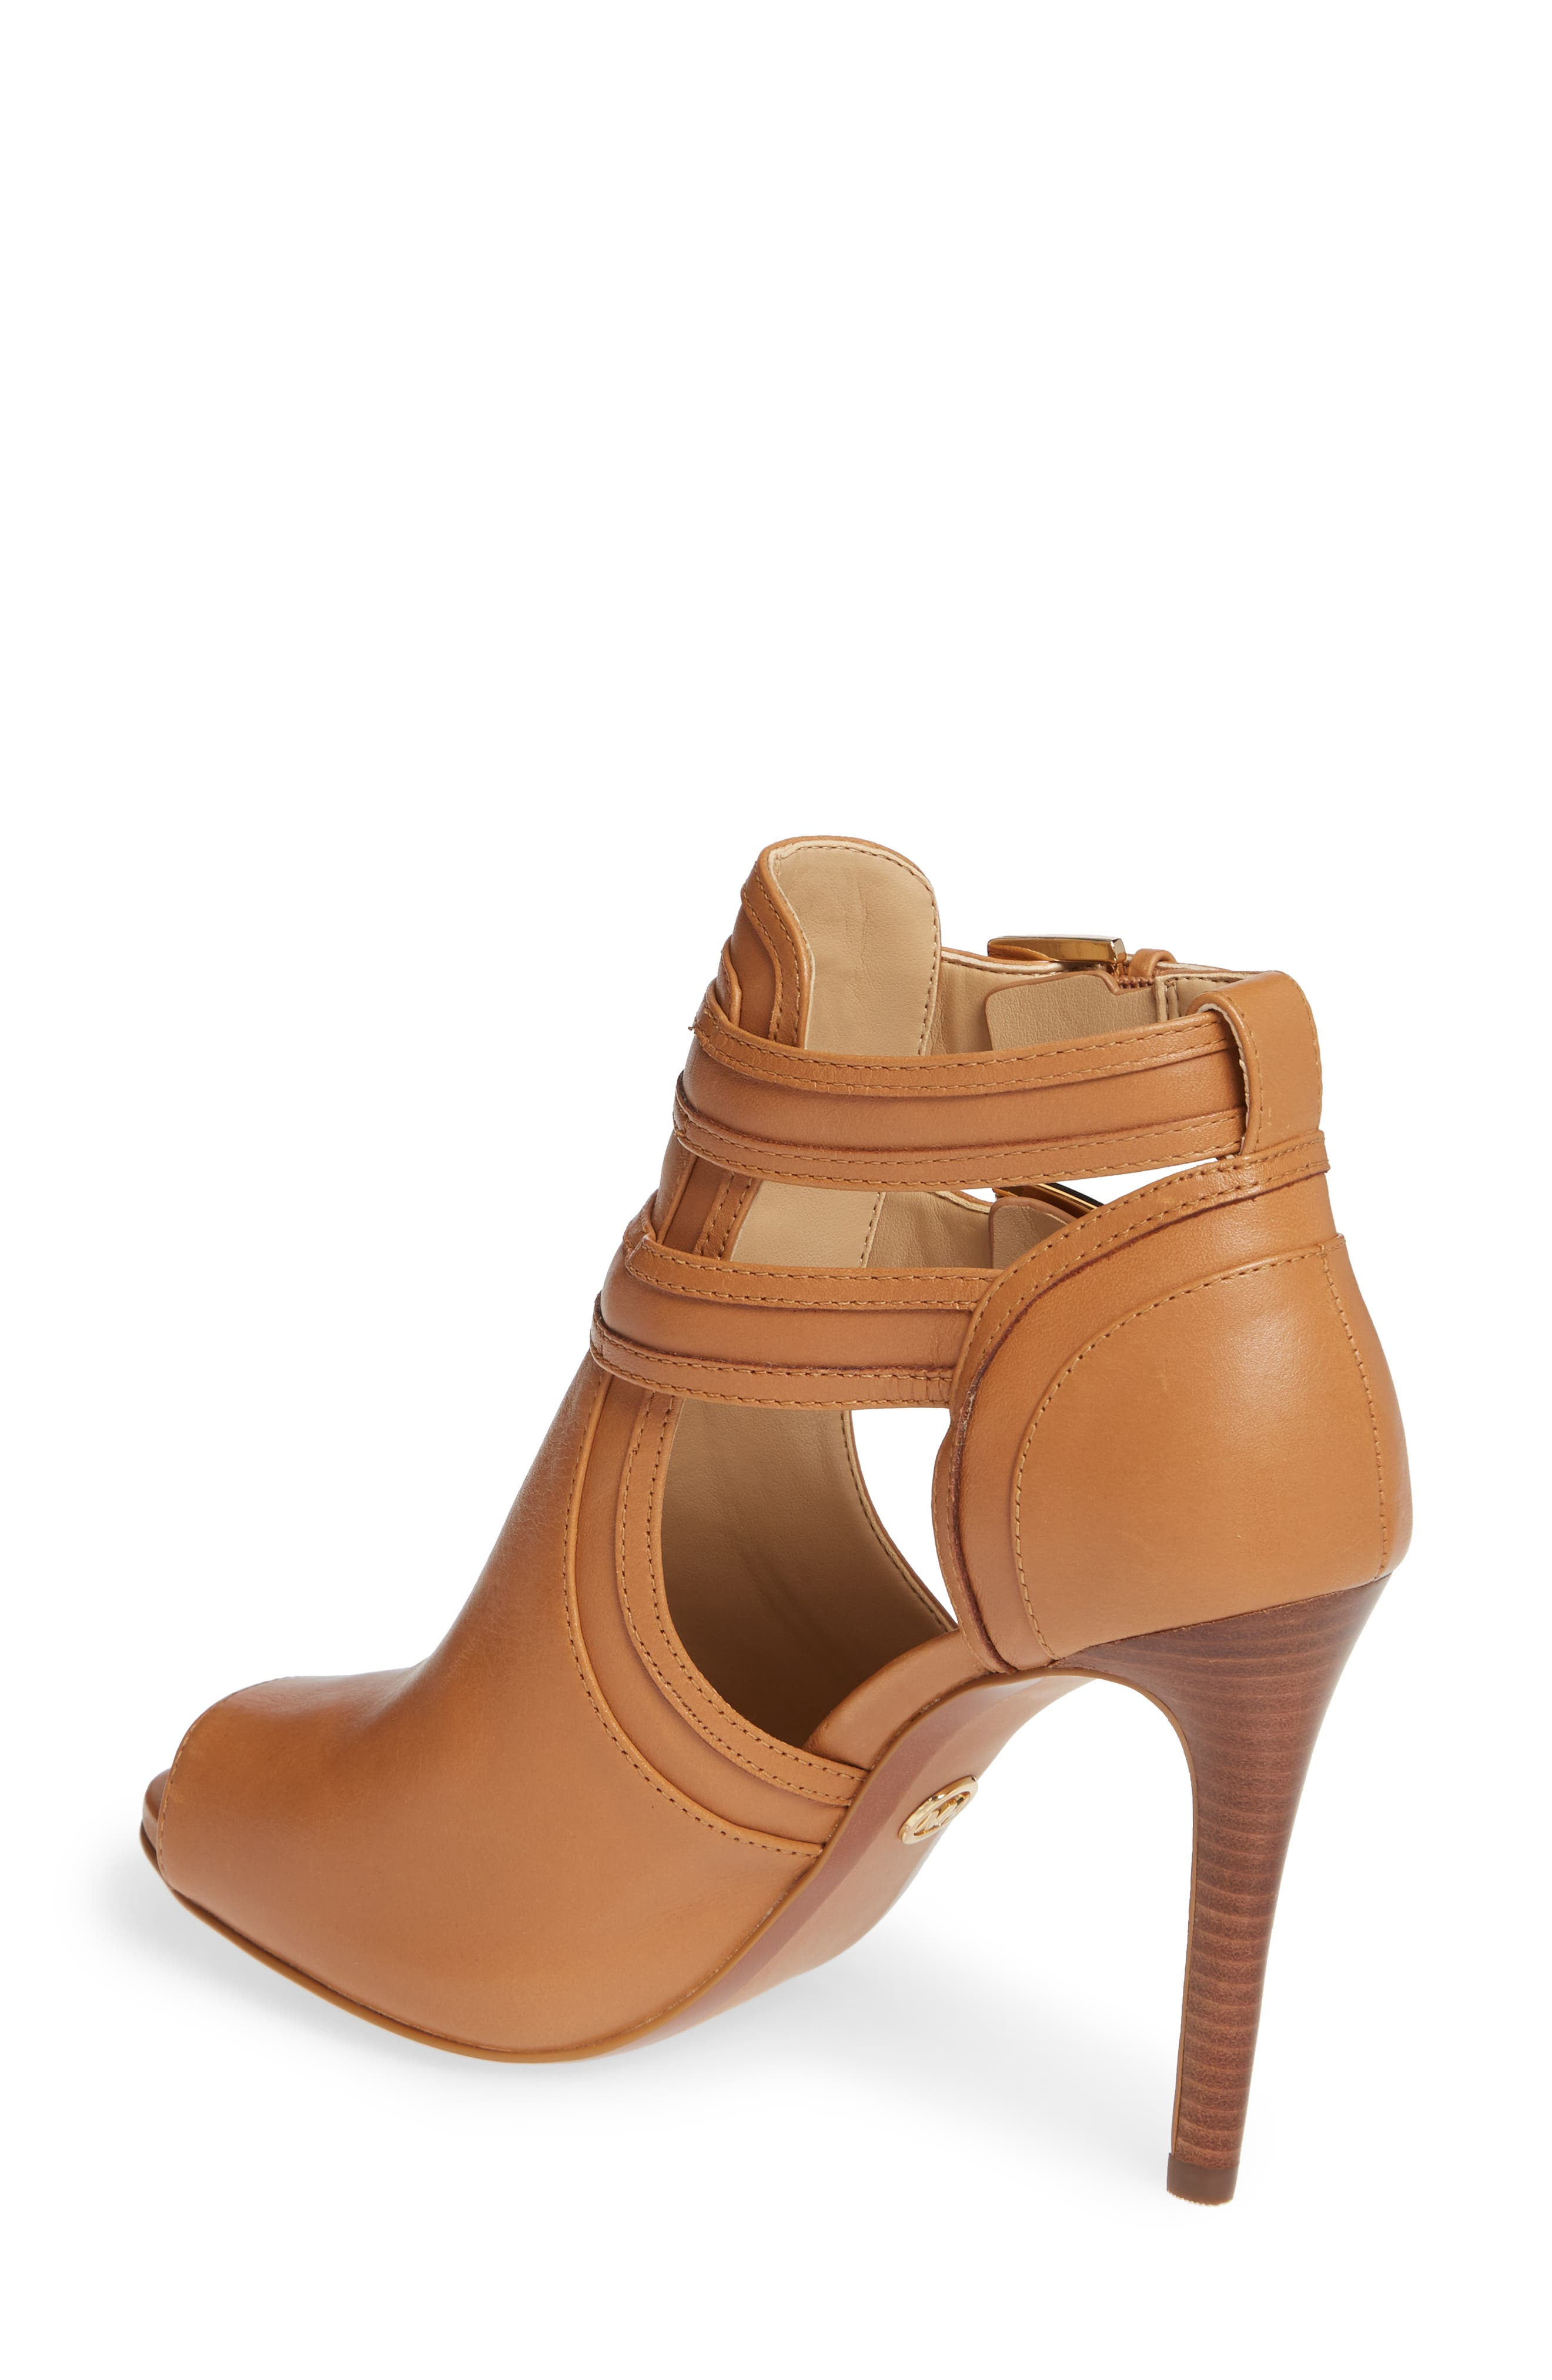 MICHAEL MICHAEL KORS, Blaze Peep Toe Buckle Bootie, Alternate thumbnail 2, color, ACORN LEATHER